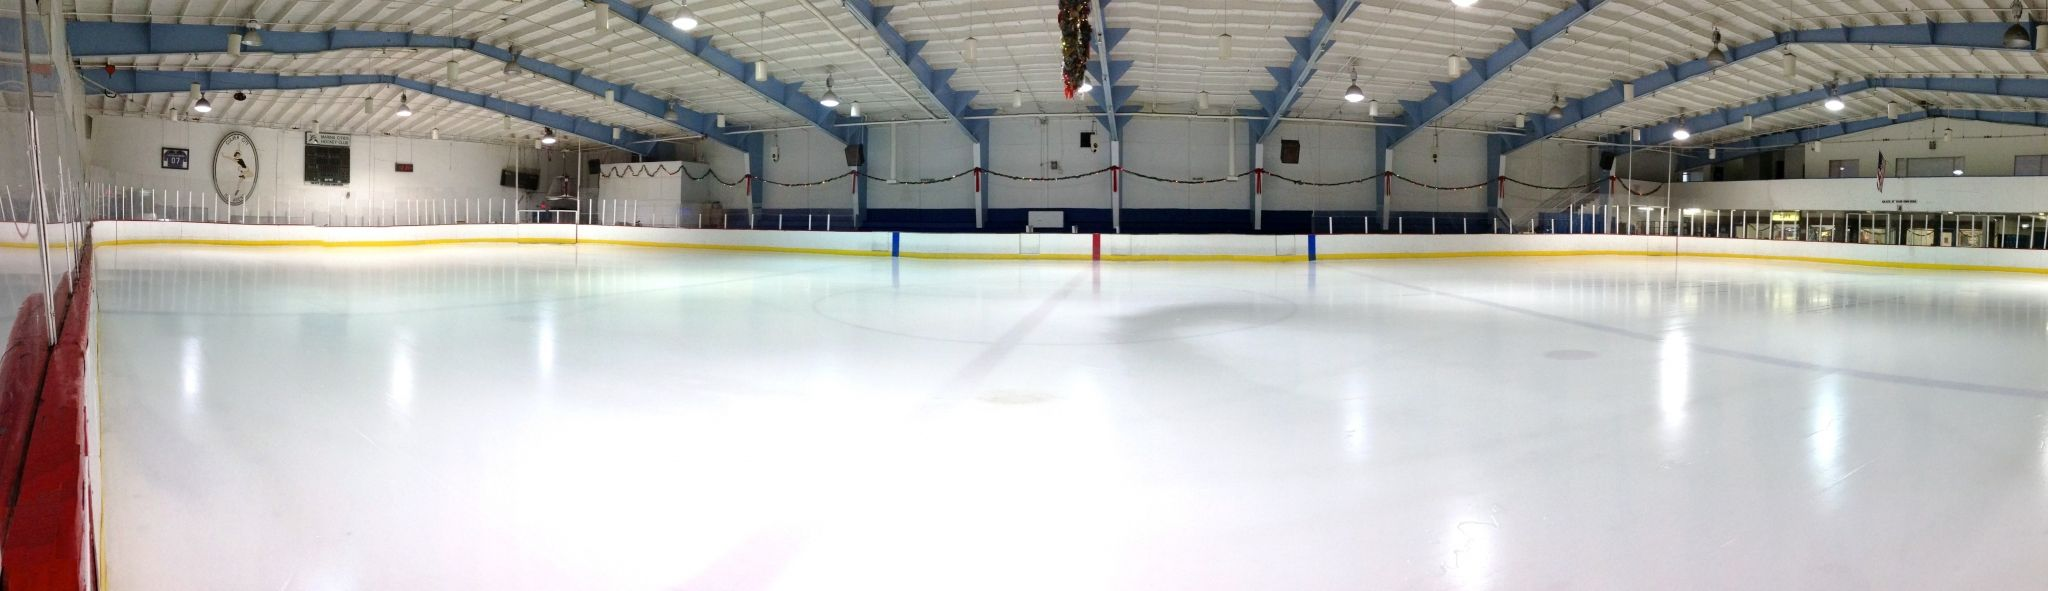 Hockey Rink Wallpaper Wallpapersafari Hockey Rink Hockey Wallpaper